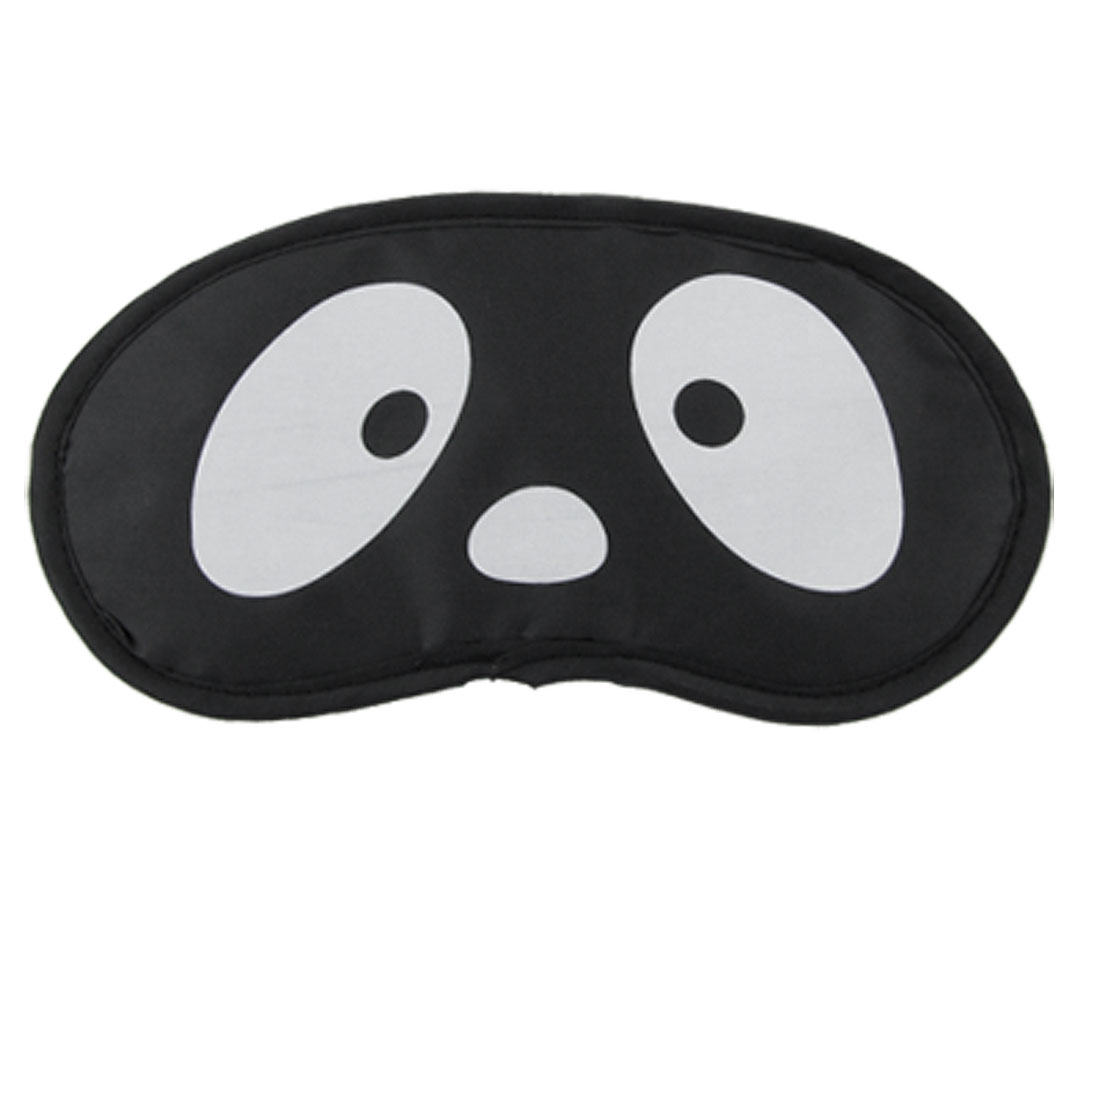 White Cartoon Sad Face Print Blindfold Sleeping Eye Shade Mask Patch